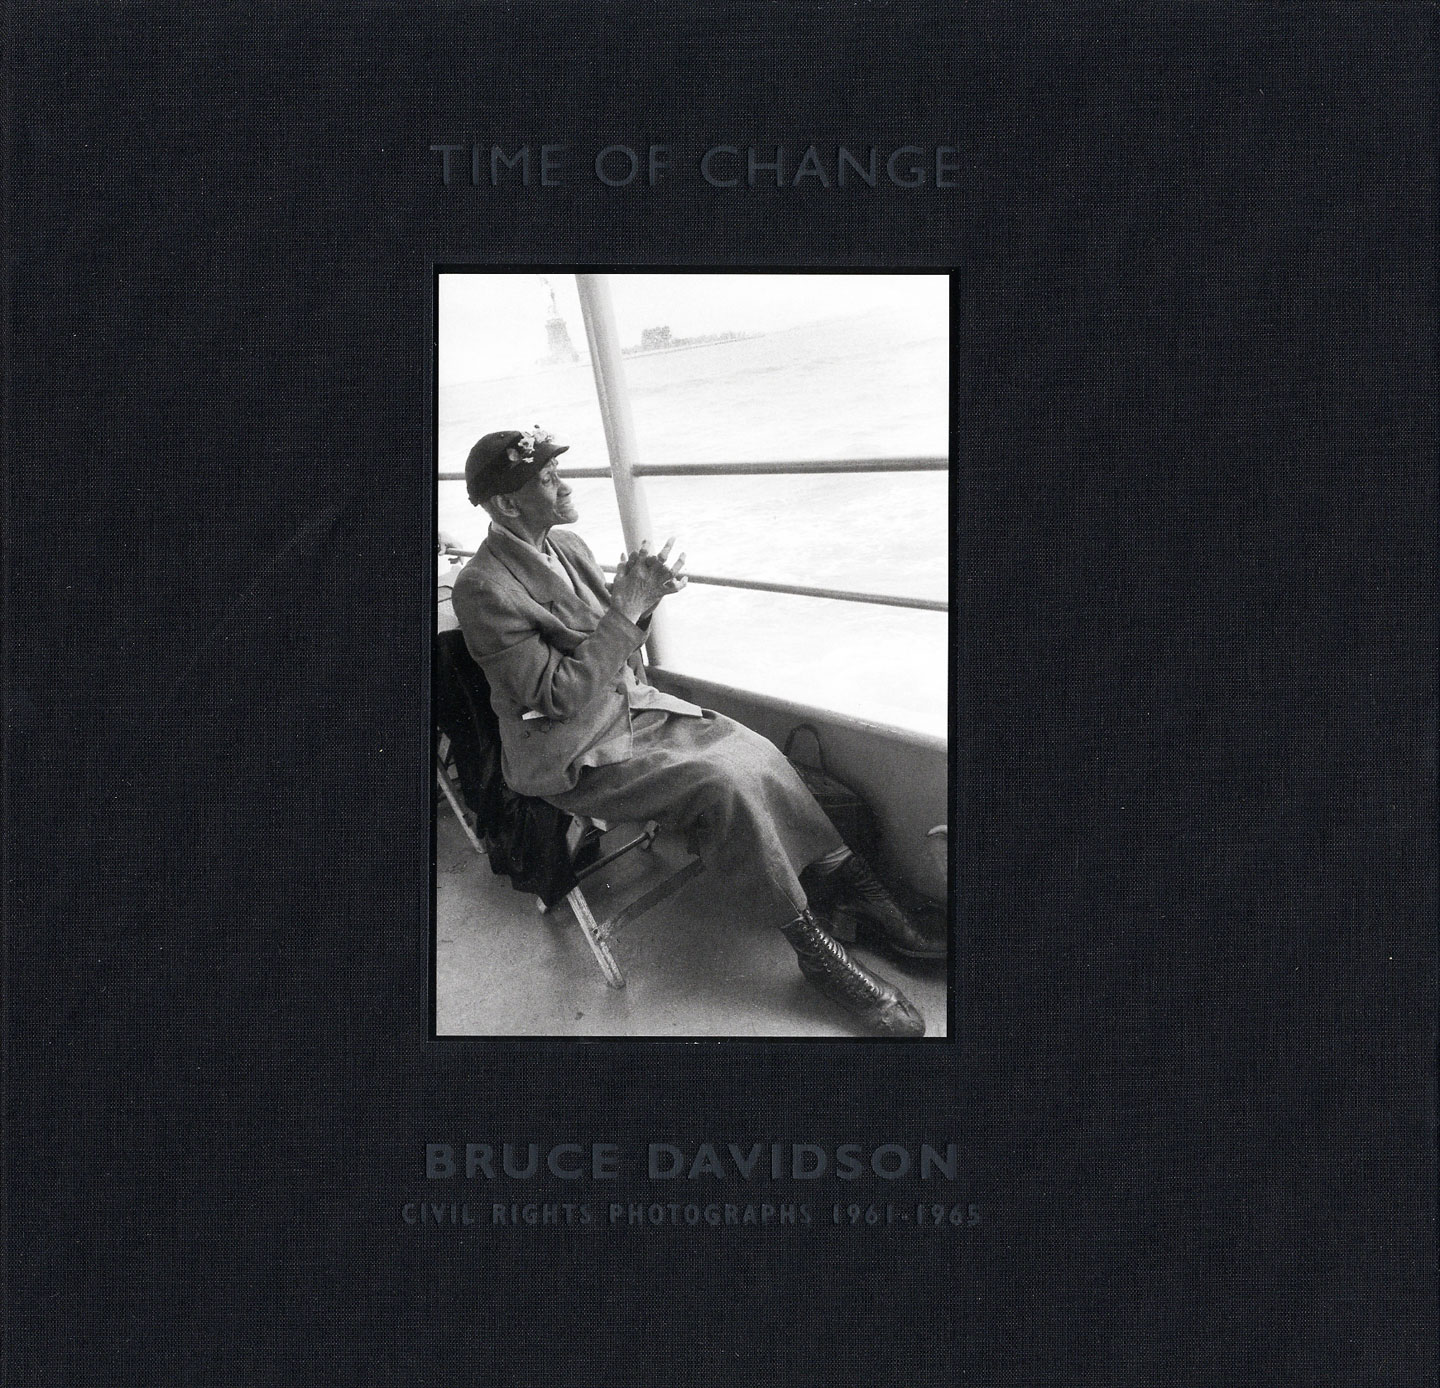 Bruce Davidson: Time of Change: Civil Rights Photographs 1961-1965